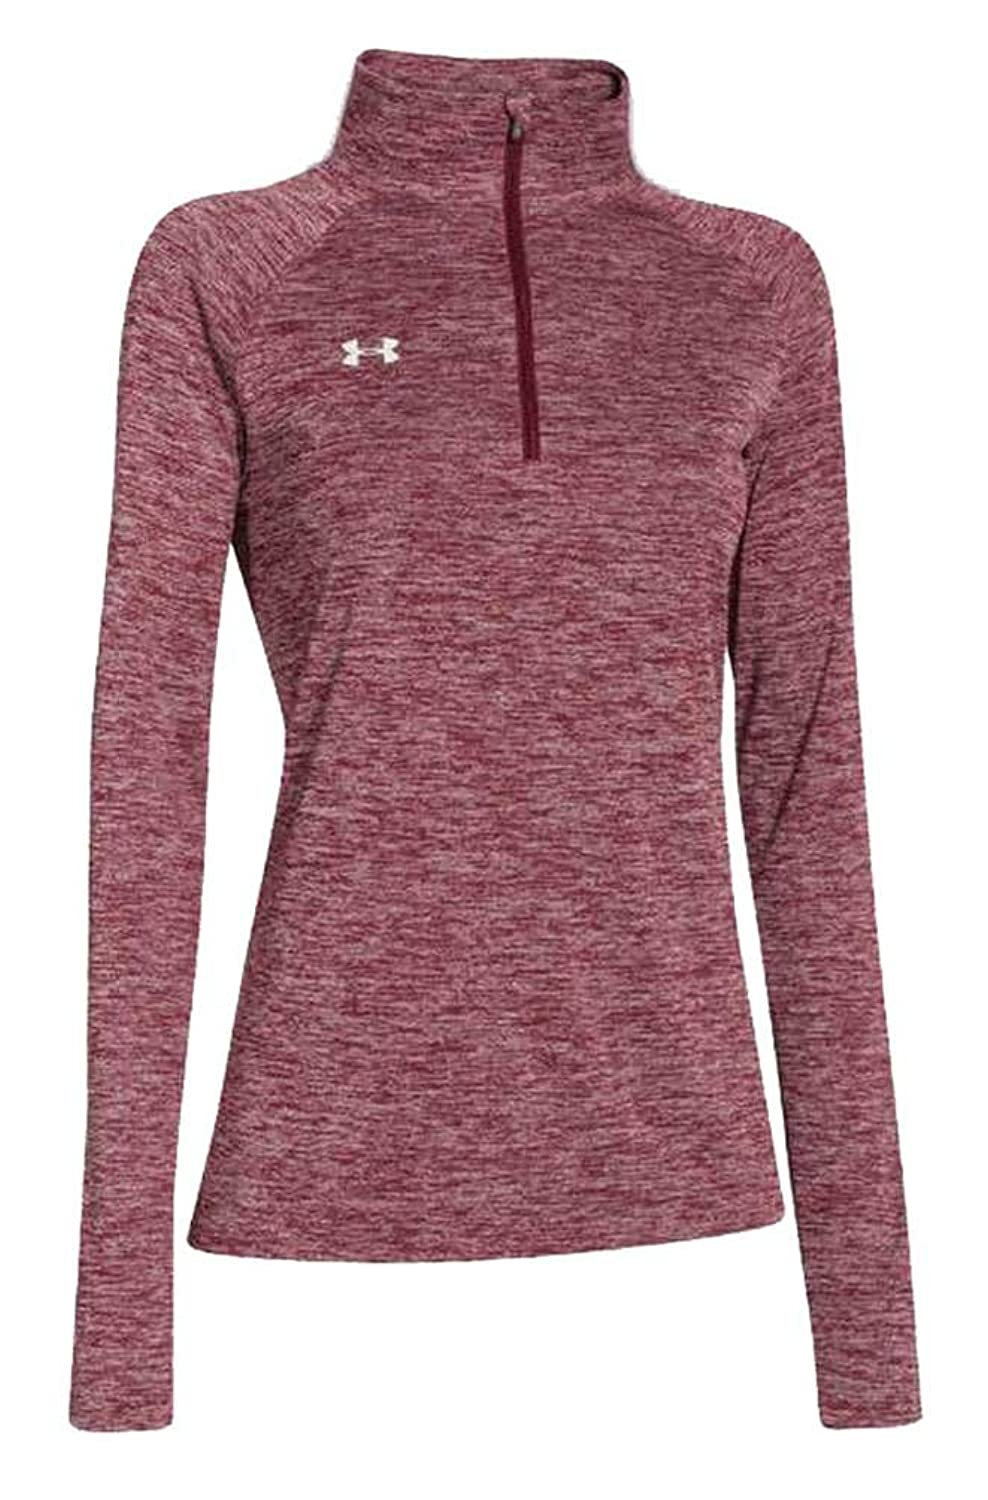 under armour qualifier 1 4 zip. under armour women\u0027s ua twisted tech 1/4 zip qualifier 1 4